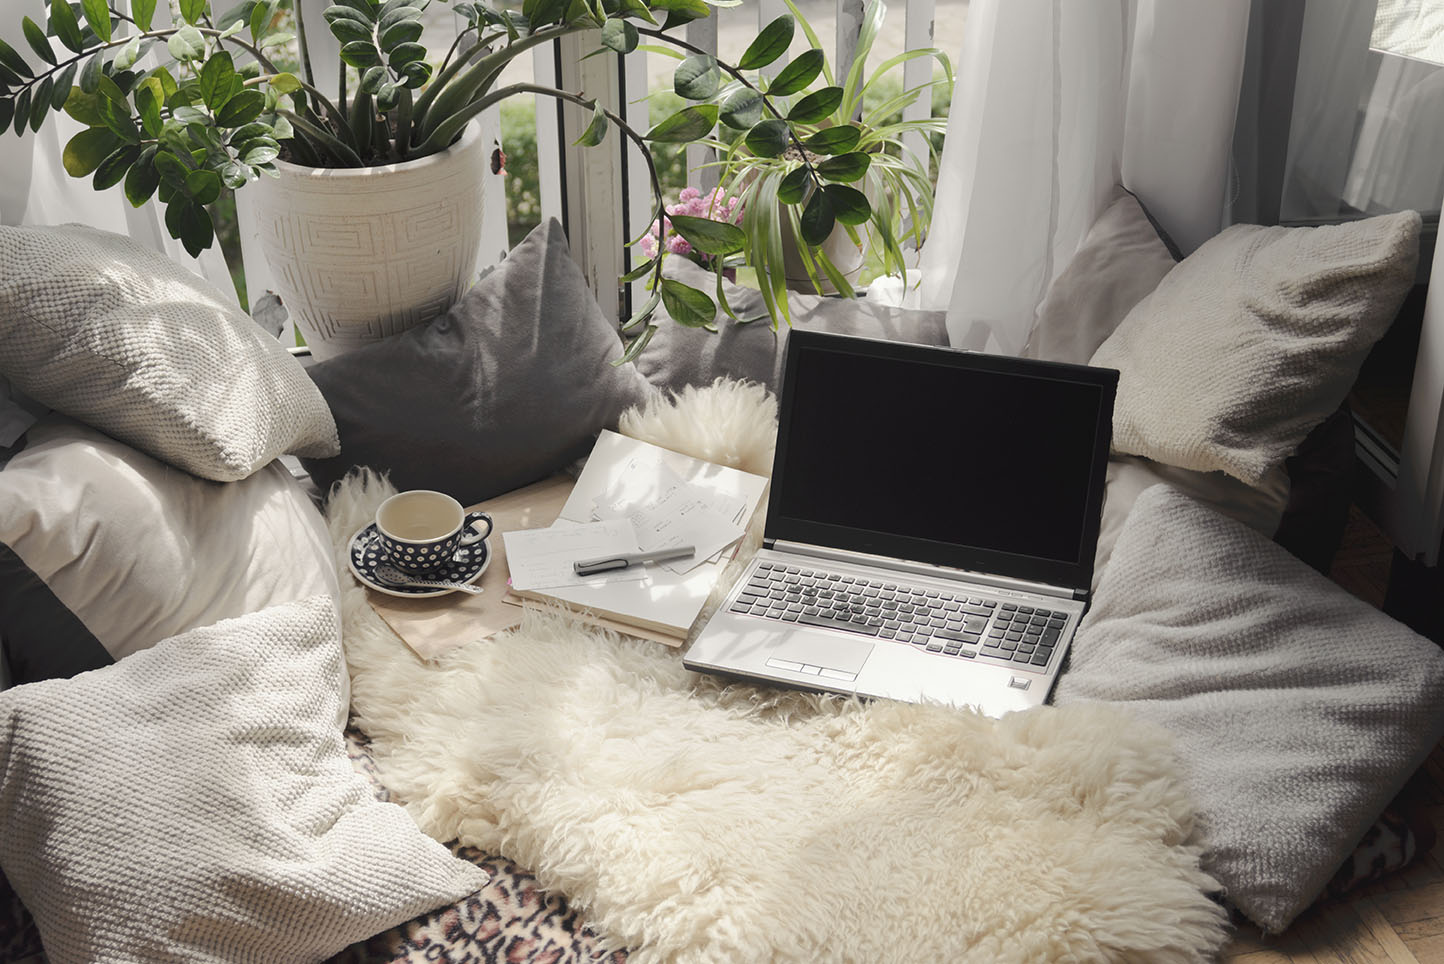 Cozy place at home for working remotely